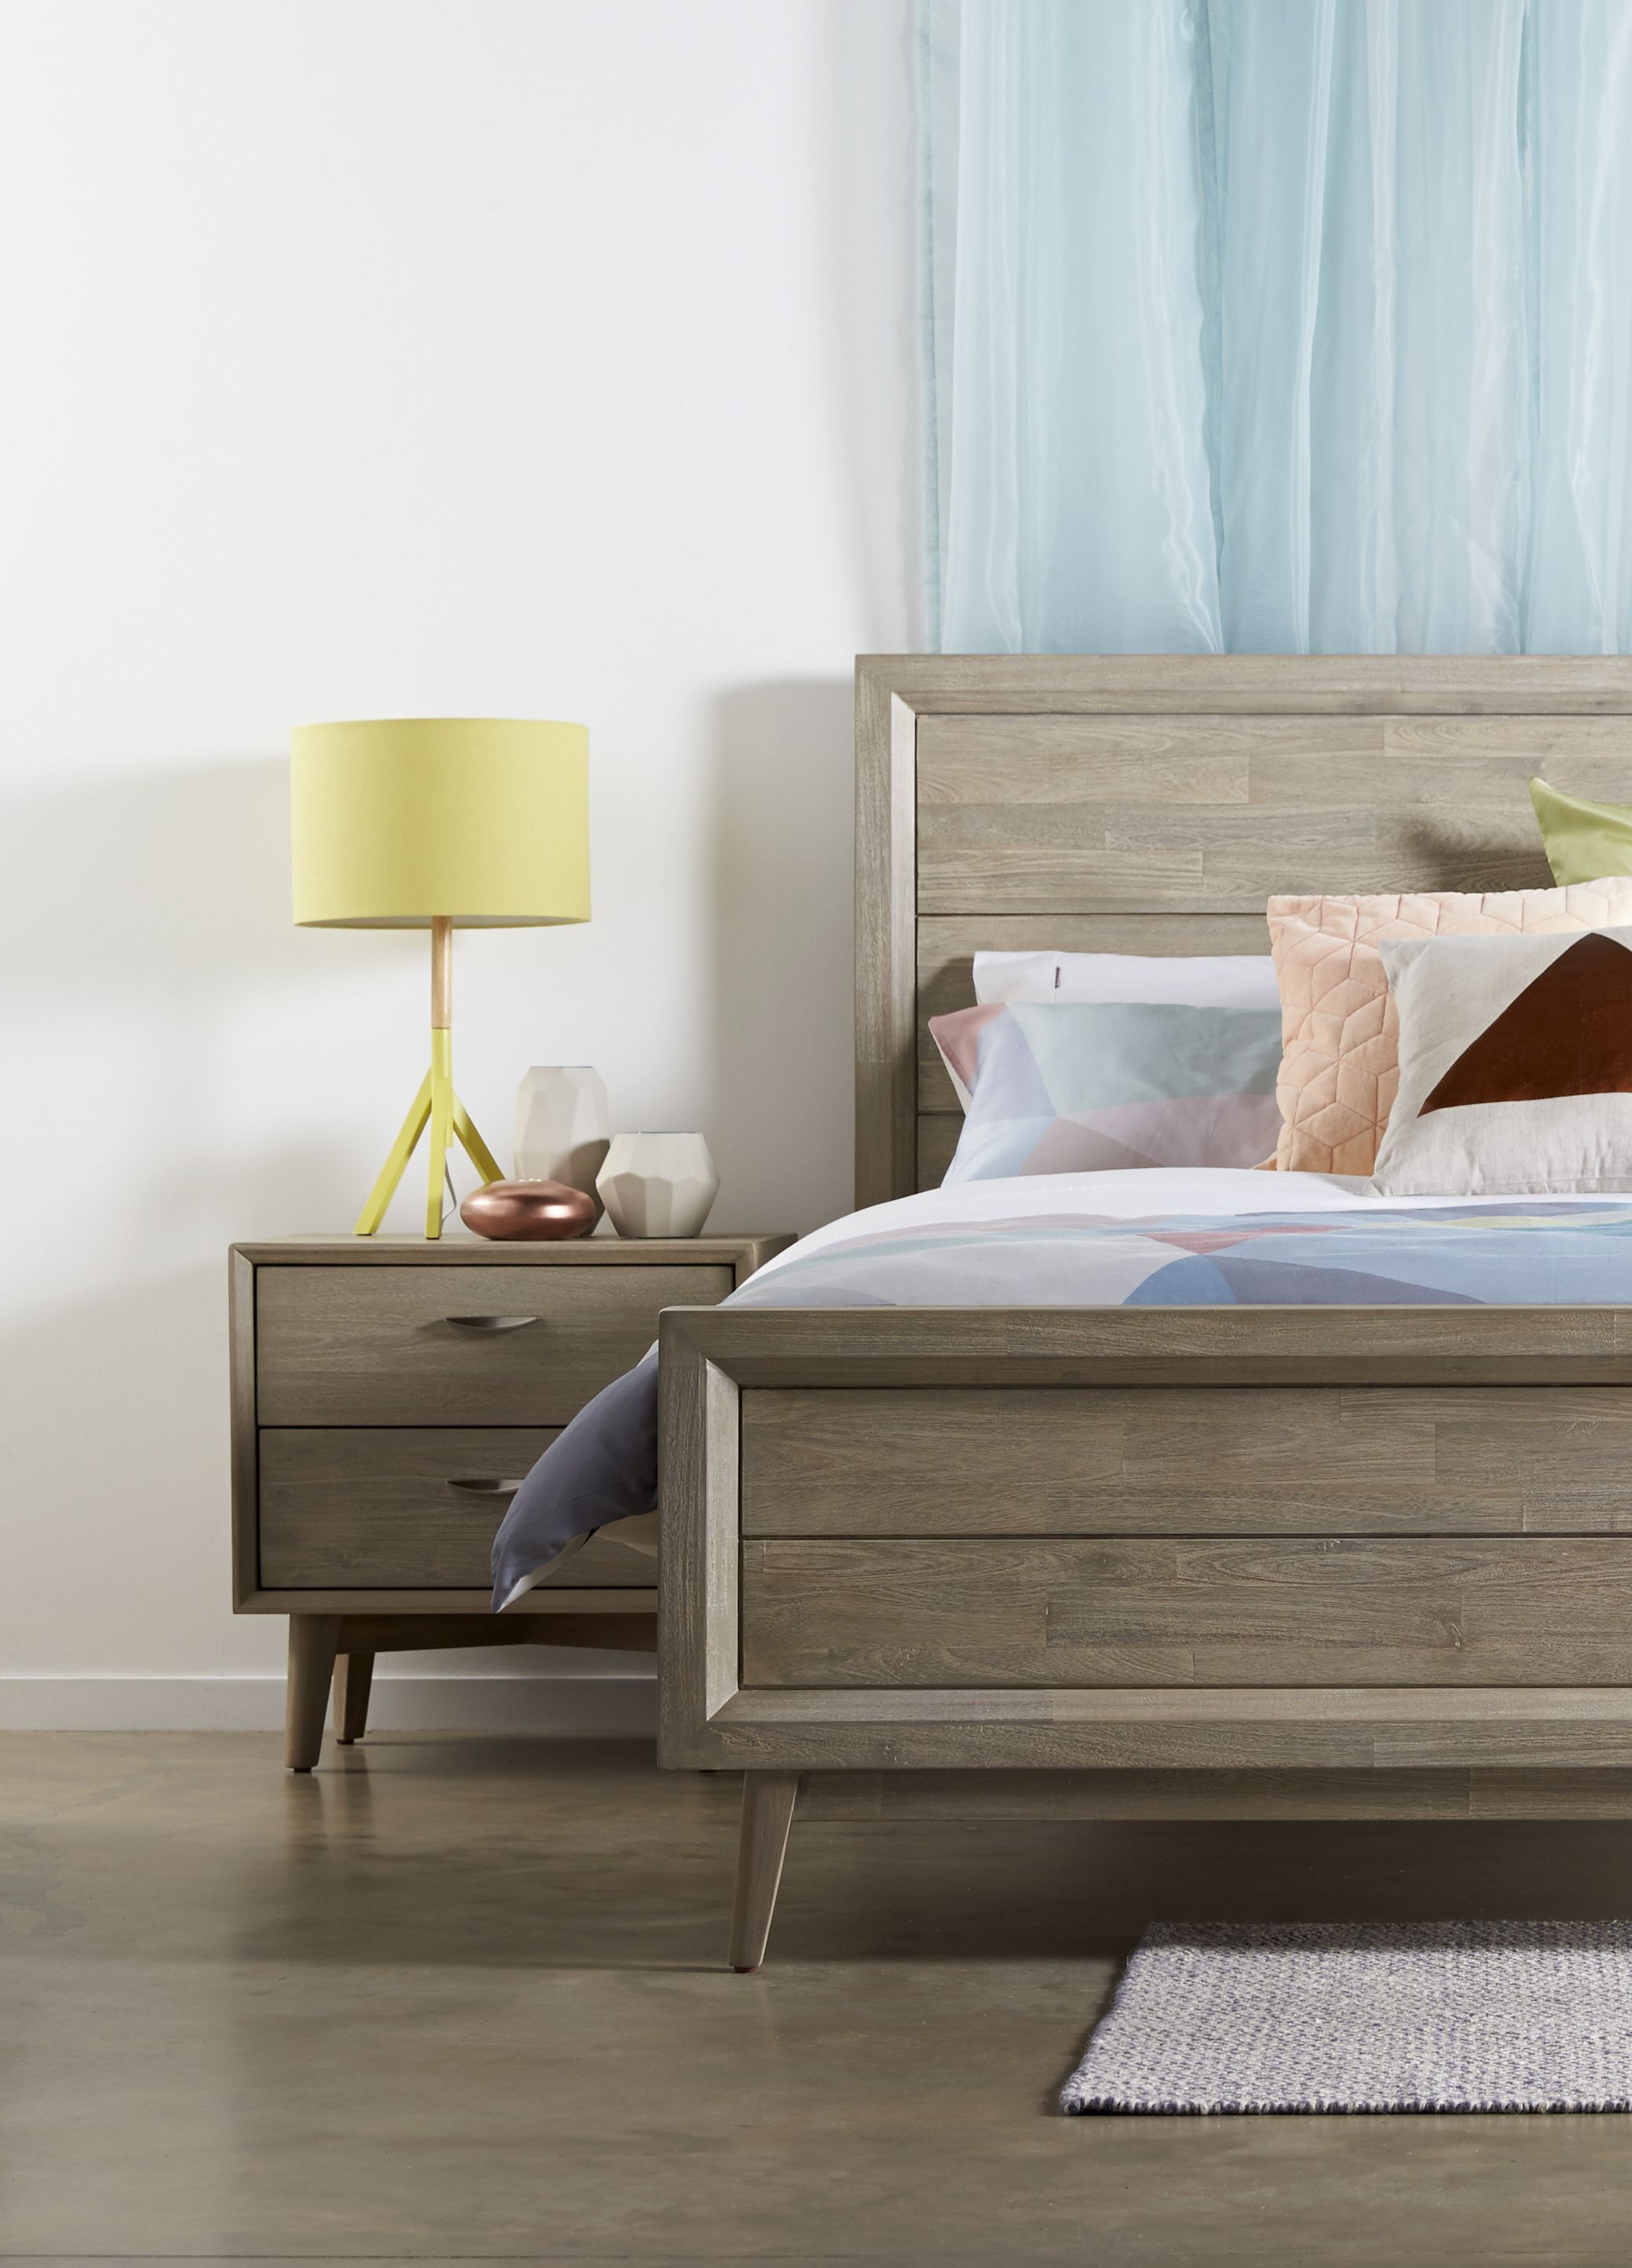 Nordic revival The Celeste suite from Bedshed gives a fresh take on